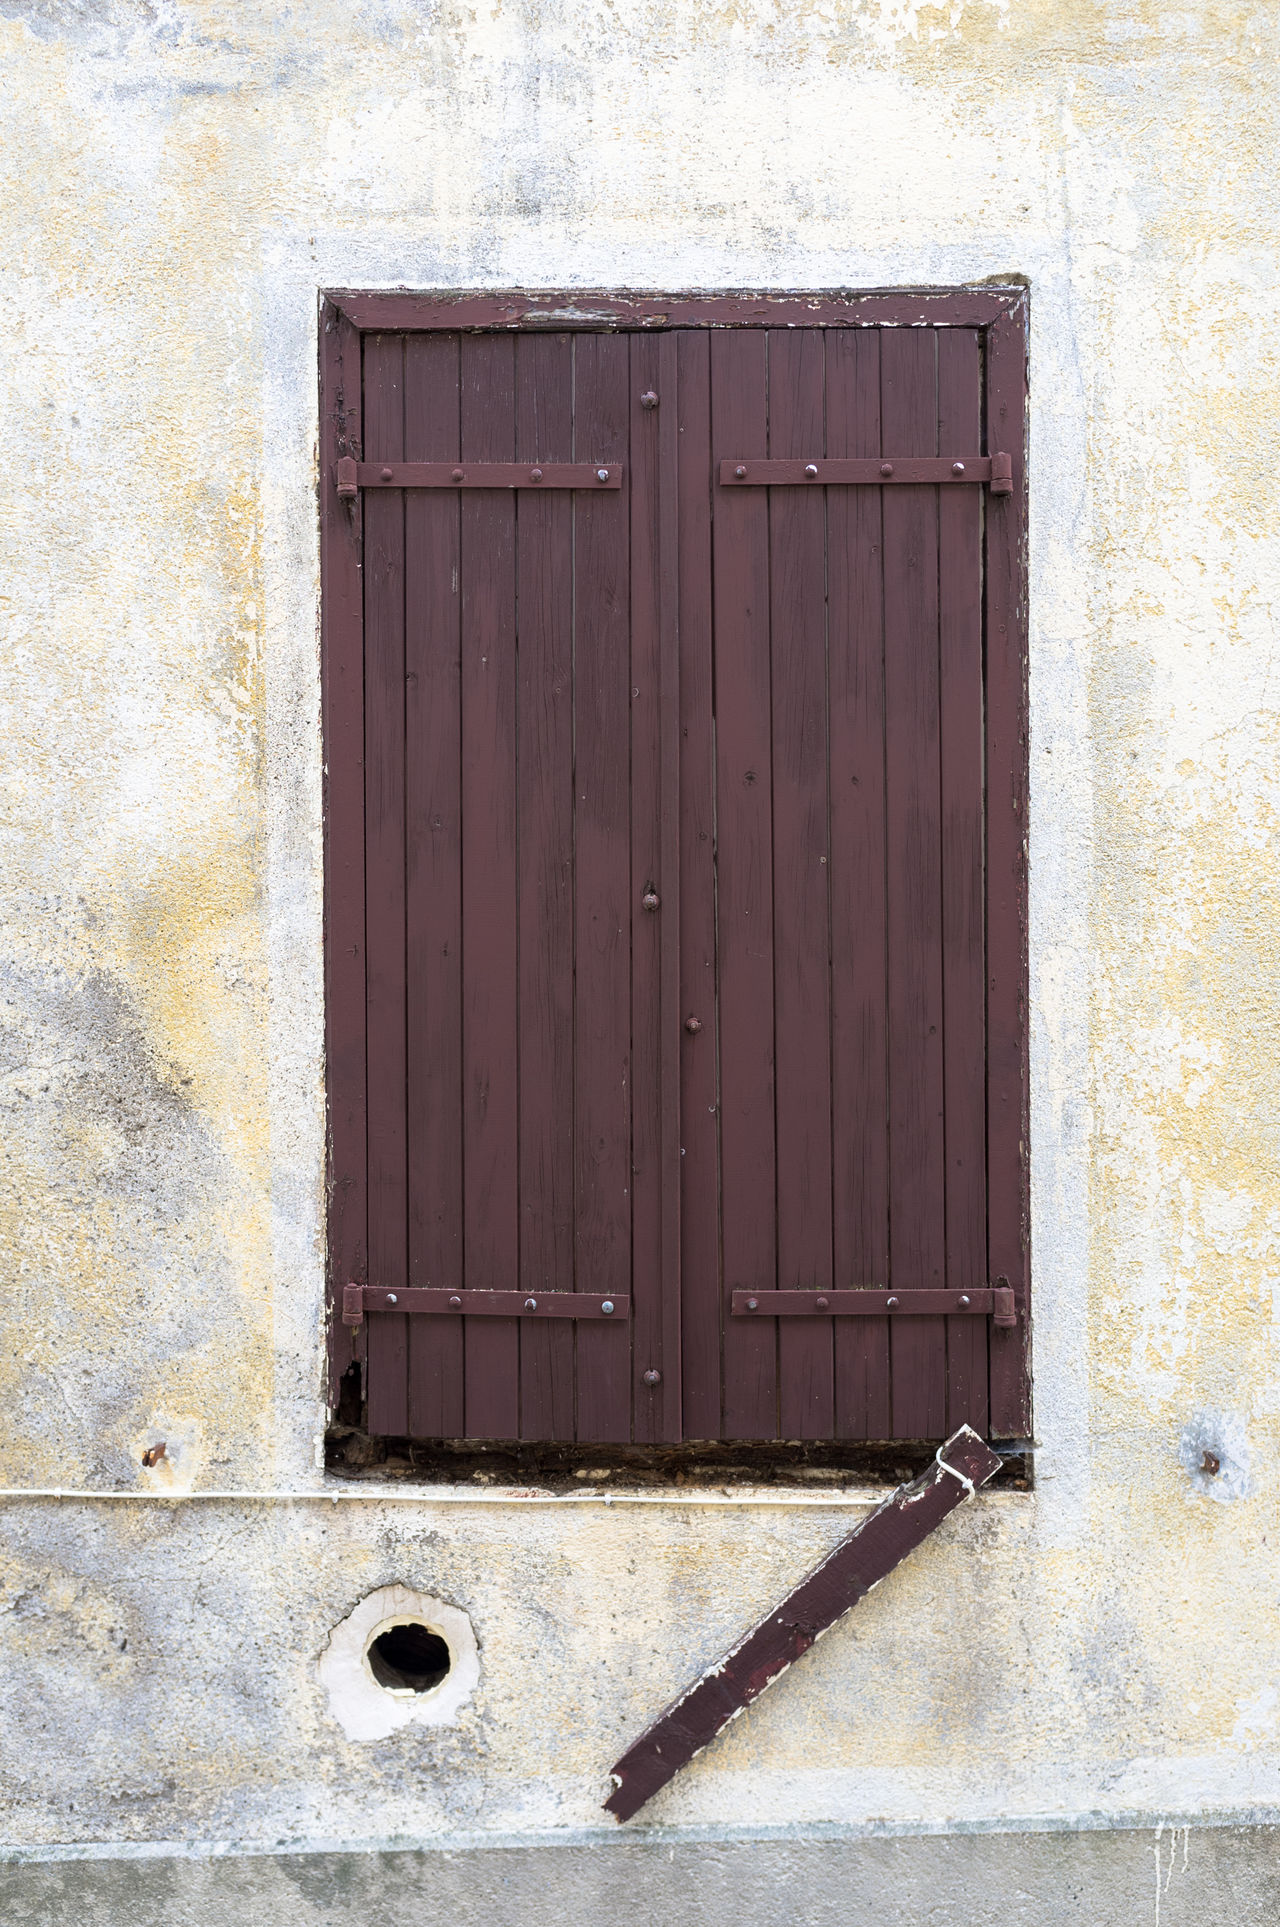 Architecture Building Exterior Built Structure Close-up Closed Day Door Entrance House Languedoc Lapradelle-Puilaurence No People Outdoors Southern France Urban Decay Urban Fragments Urban Geometry Urban Landscape Urbanphotography